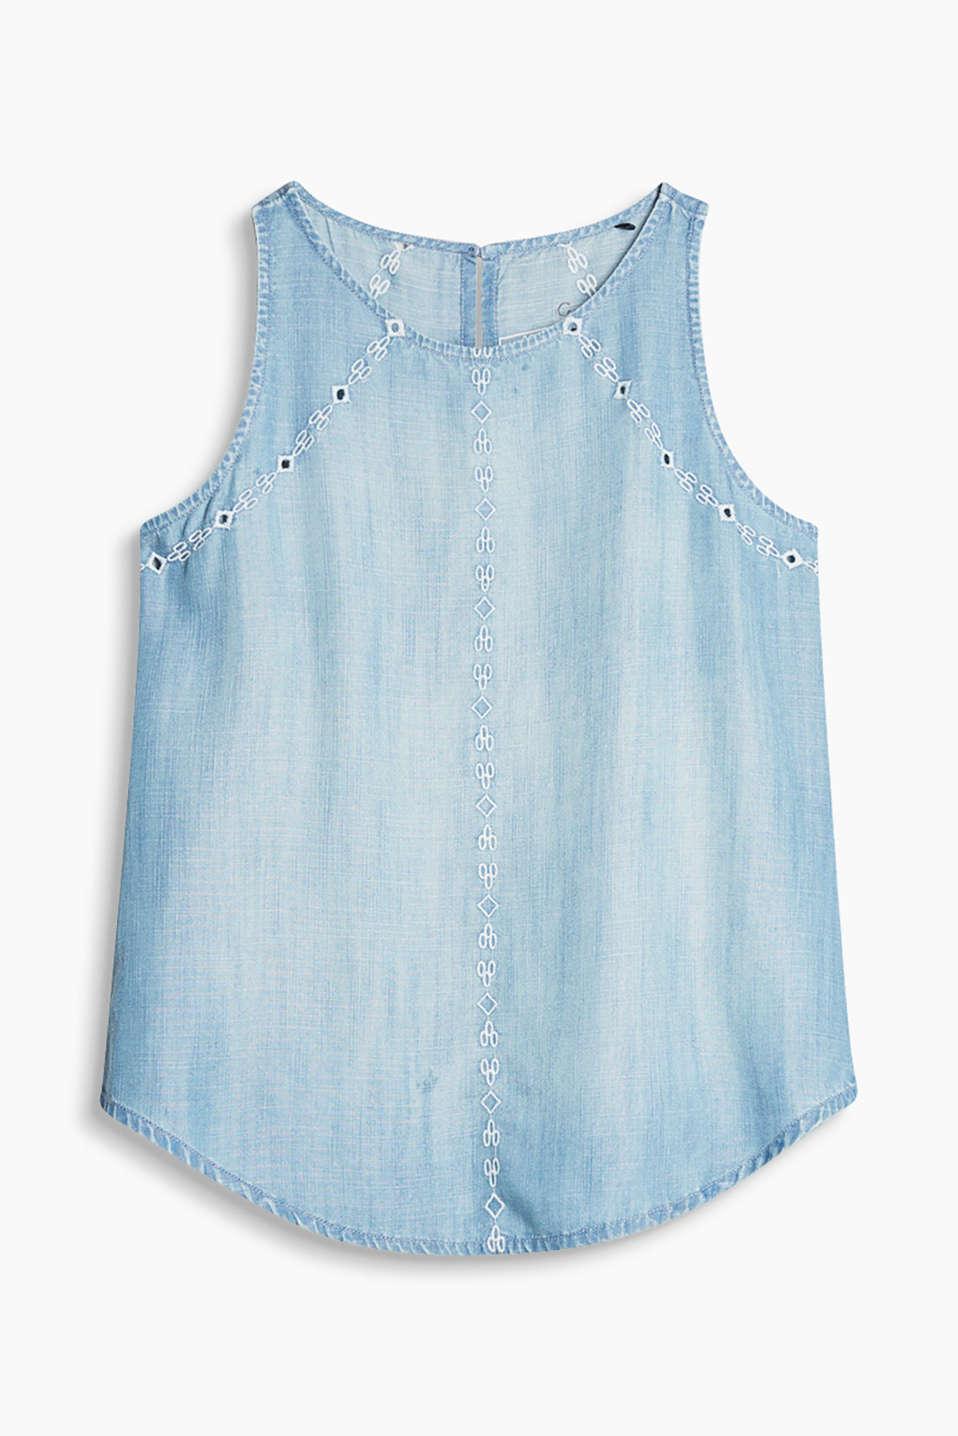 Ärmelloses Top aus hellem Sommer-Denim mit Stickerei